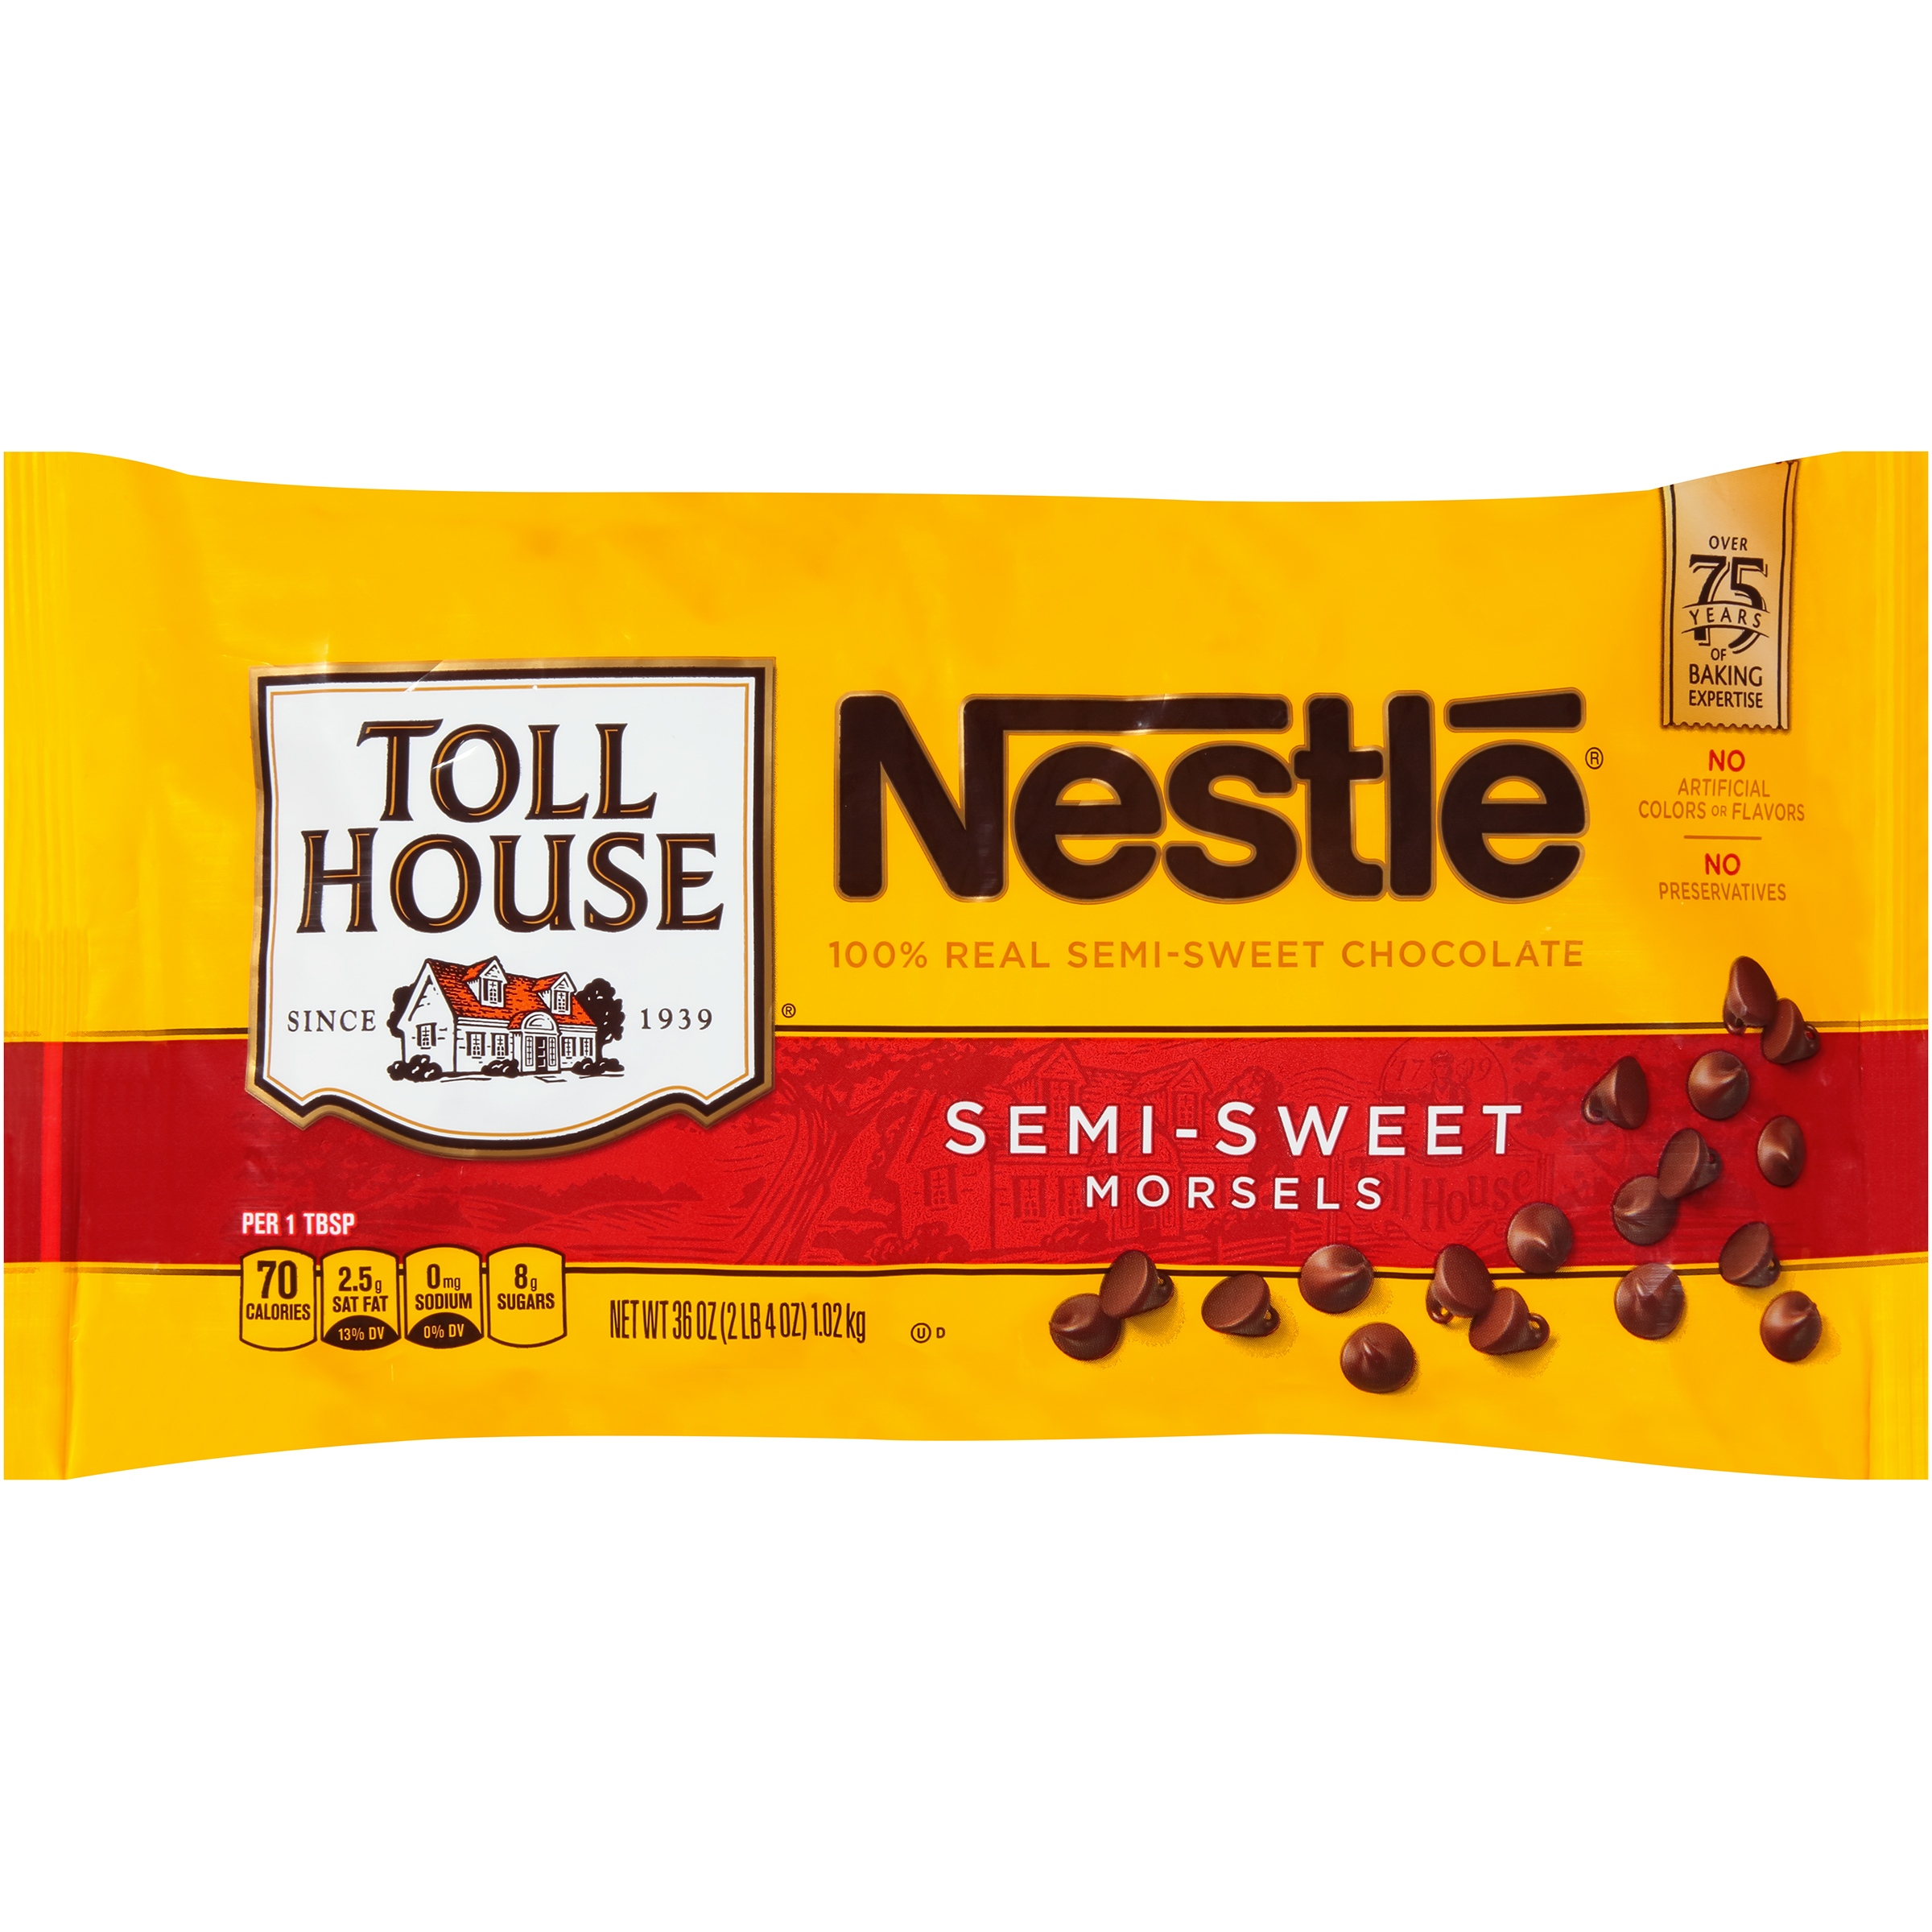 Nestlé TOLL HOUSE Semi-Sweet Chocolate Morsels 36 oz. Bag